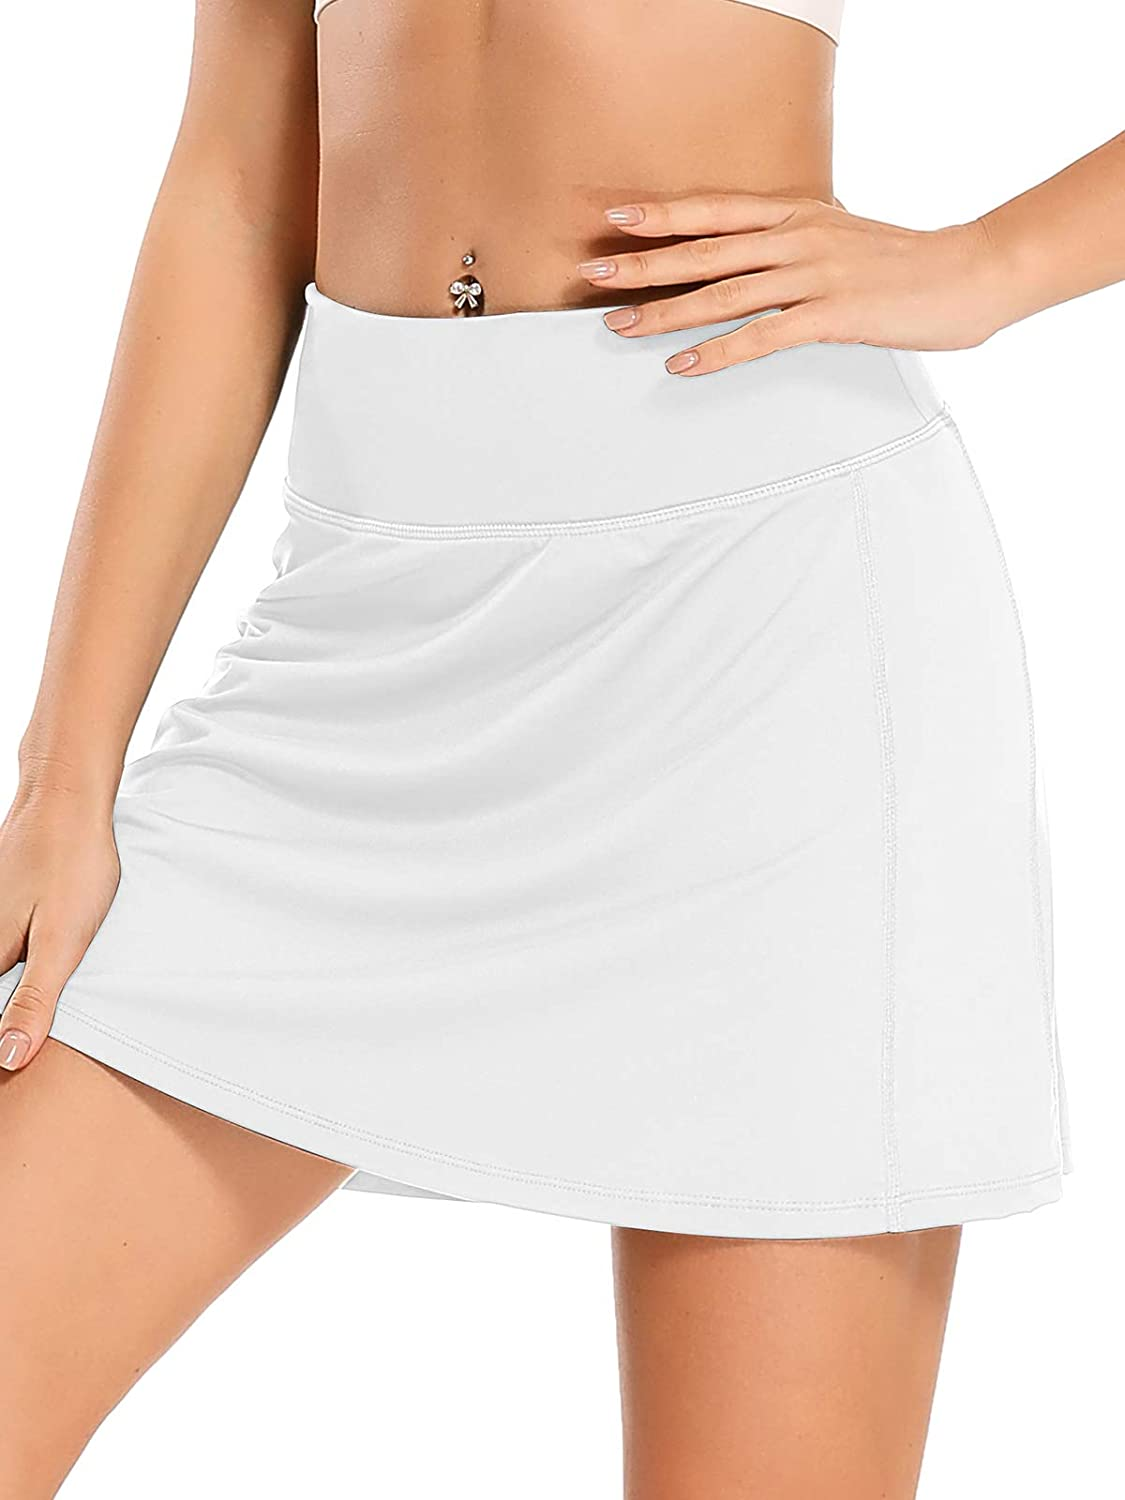 Women's Athletic Tennis Skorts with Pockets Workout Golf Exercise & Running Skirts Sport Skorts: Clothing